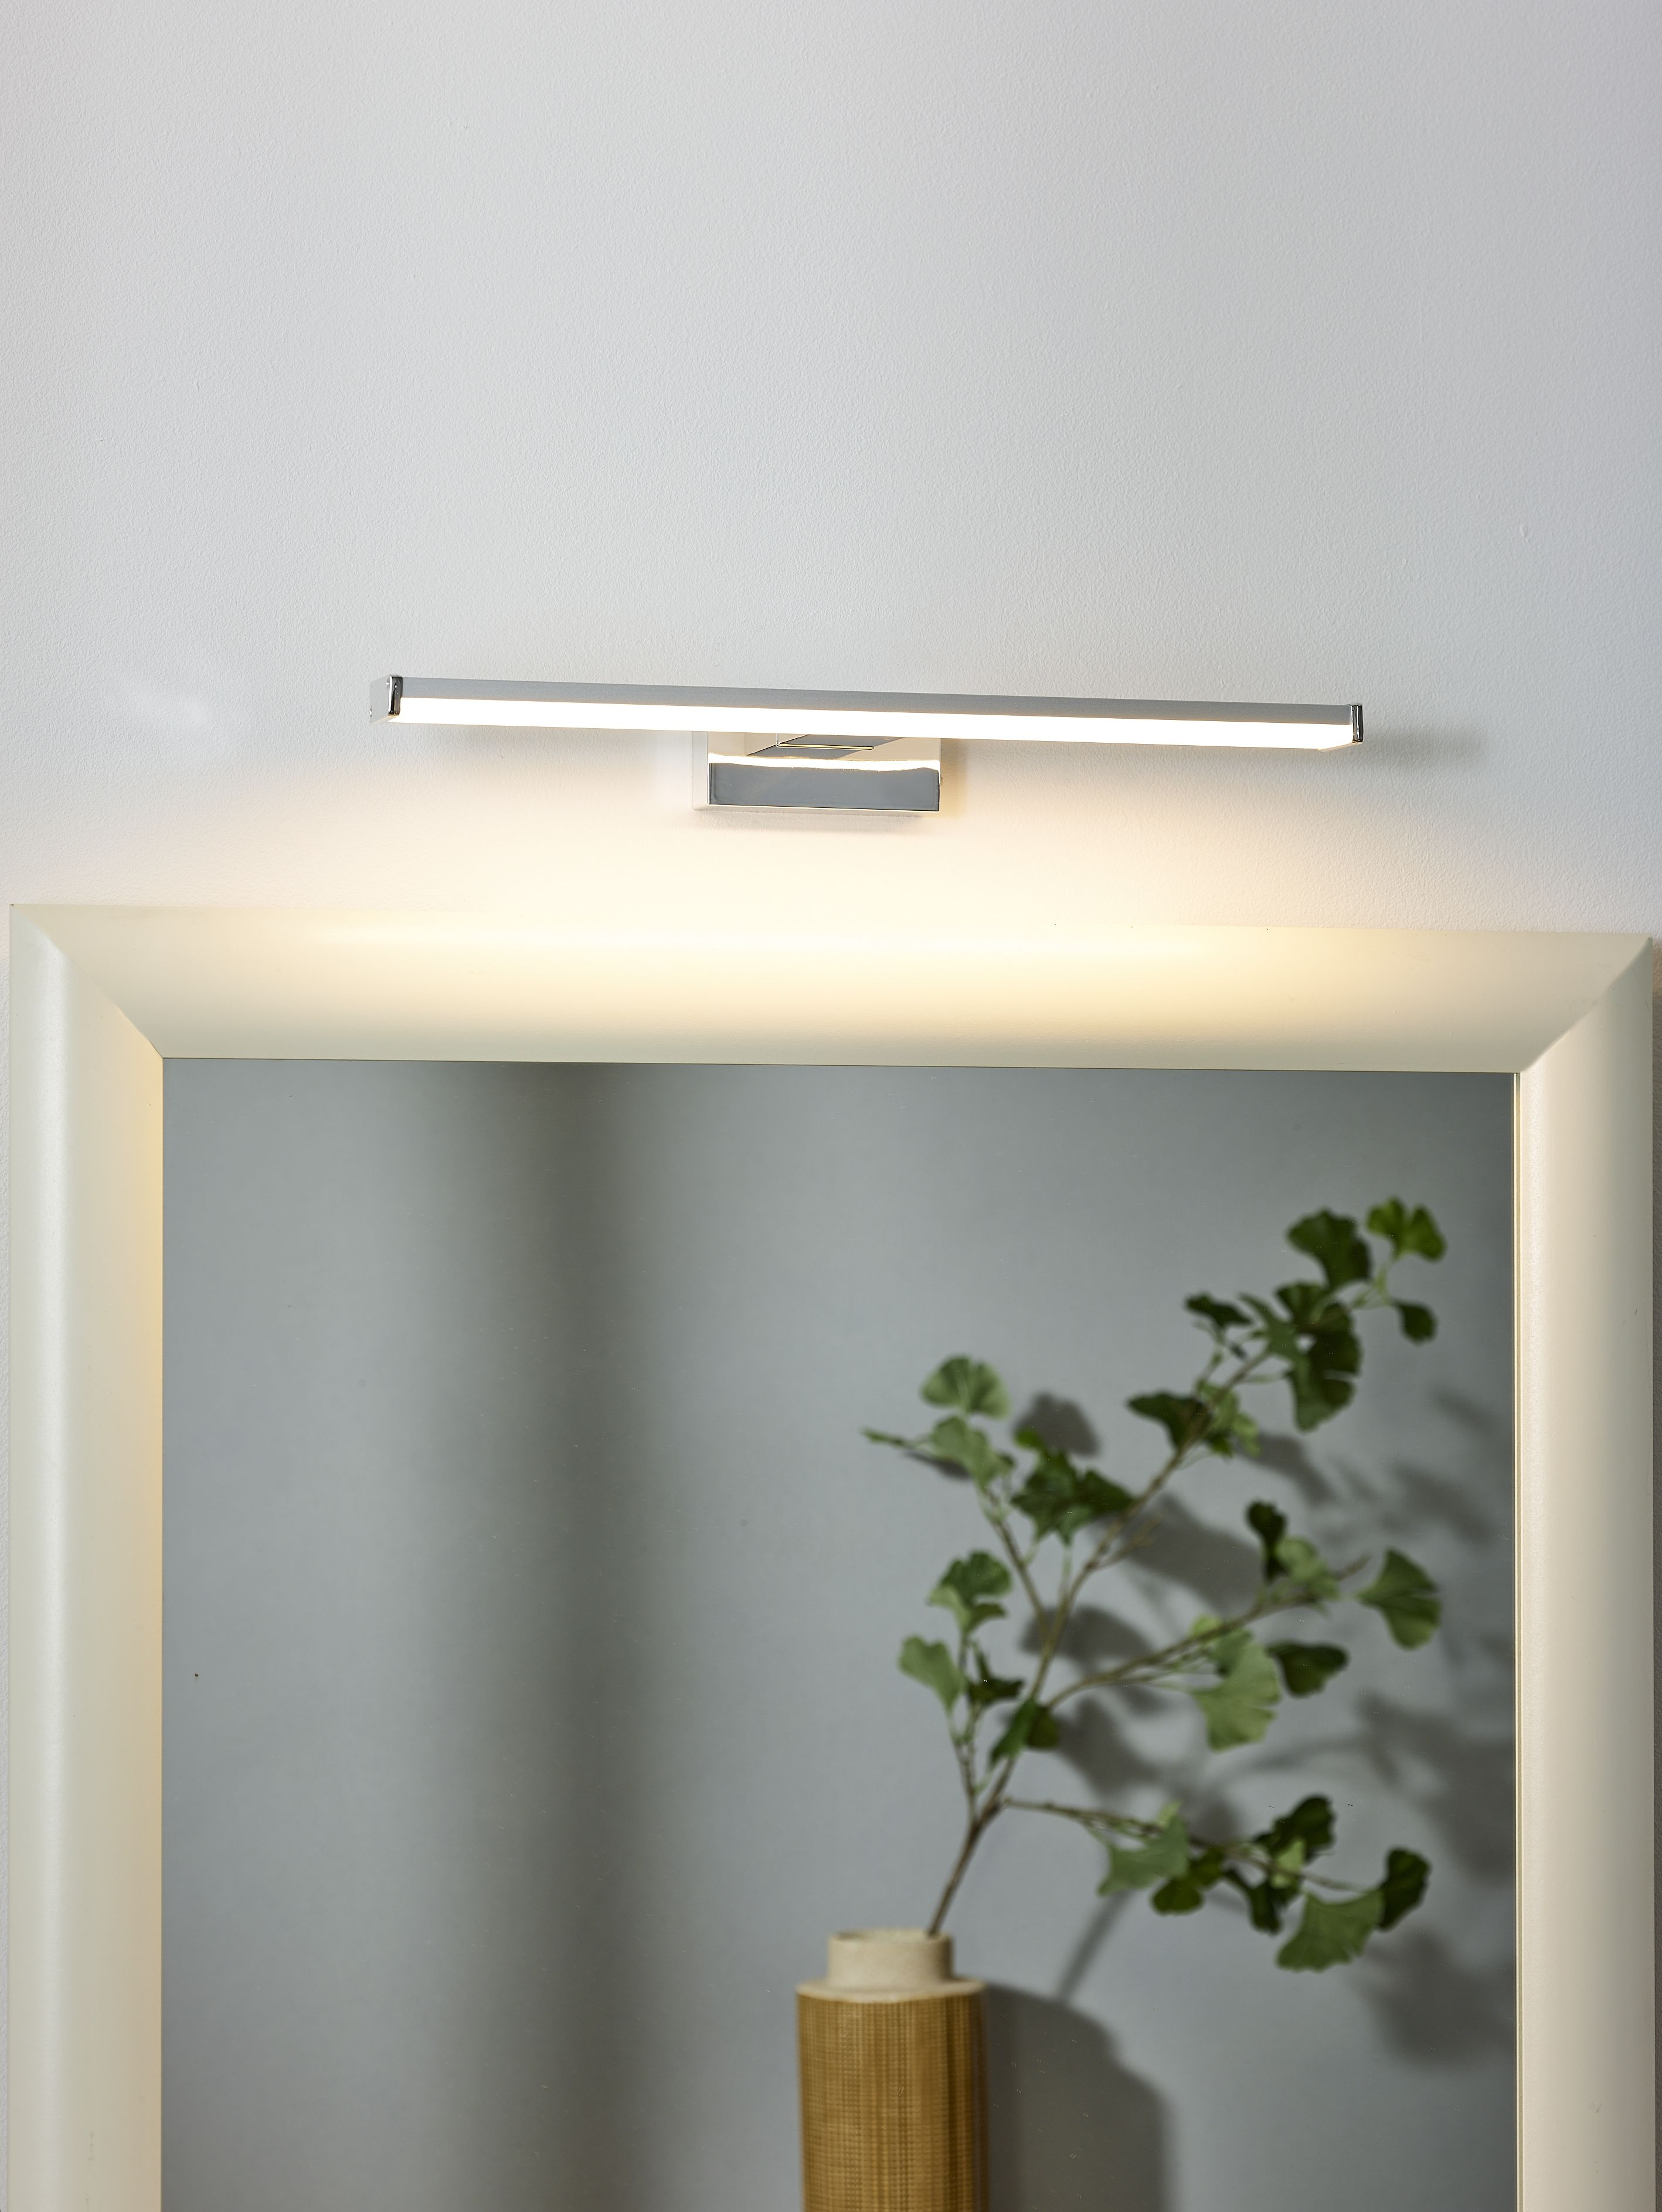 Sleek Lighting In Your Contemporary Bathroom Lucide Onno Verlichting L Eclairage Lighting Lamp Lampe Mirrorlight Spiegellam Lampen Badezimmer Spiegel